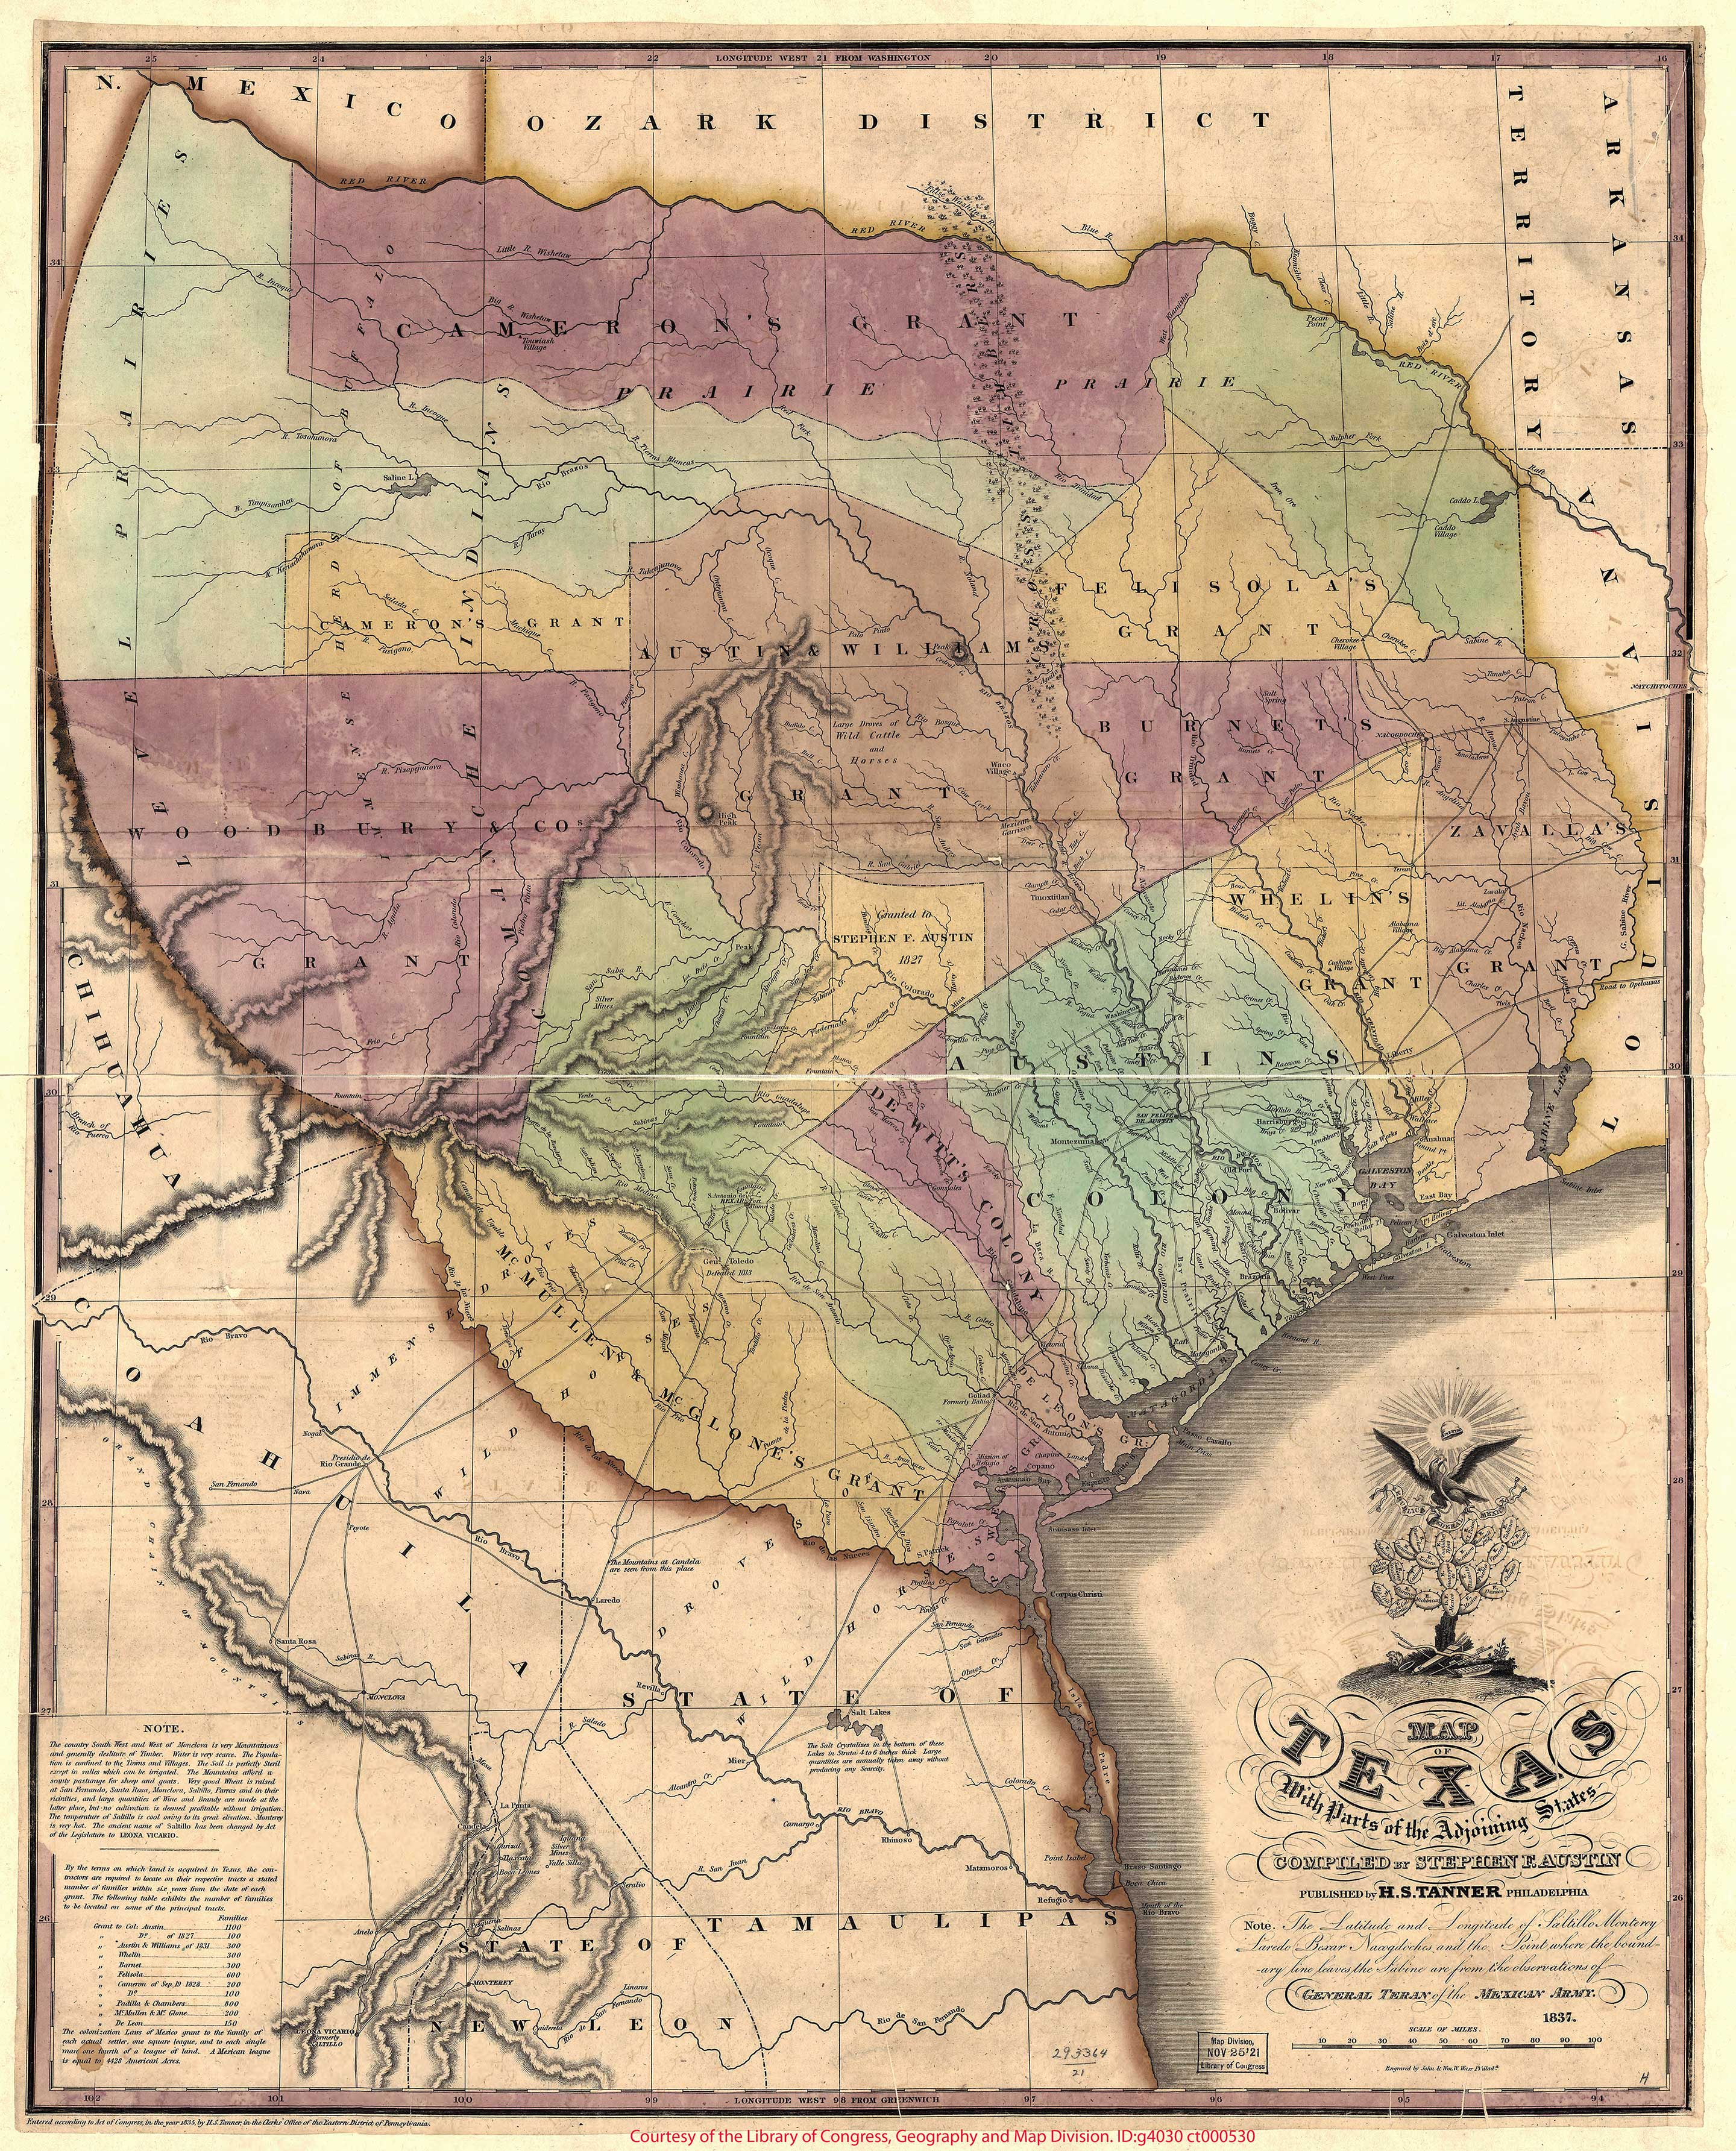 Old Historical City, County and State Maps of Texas